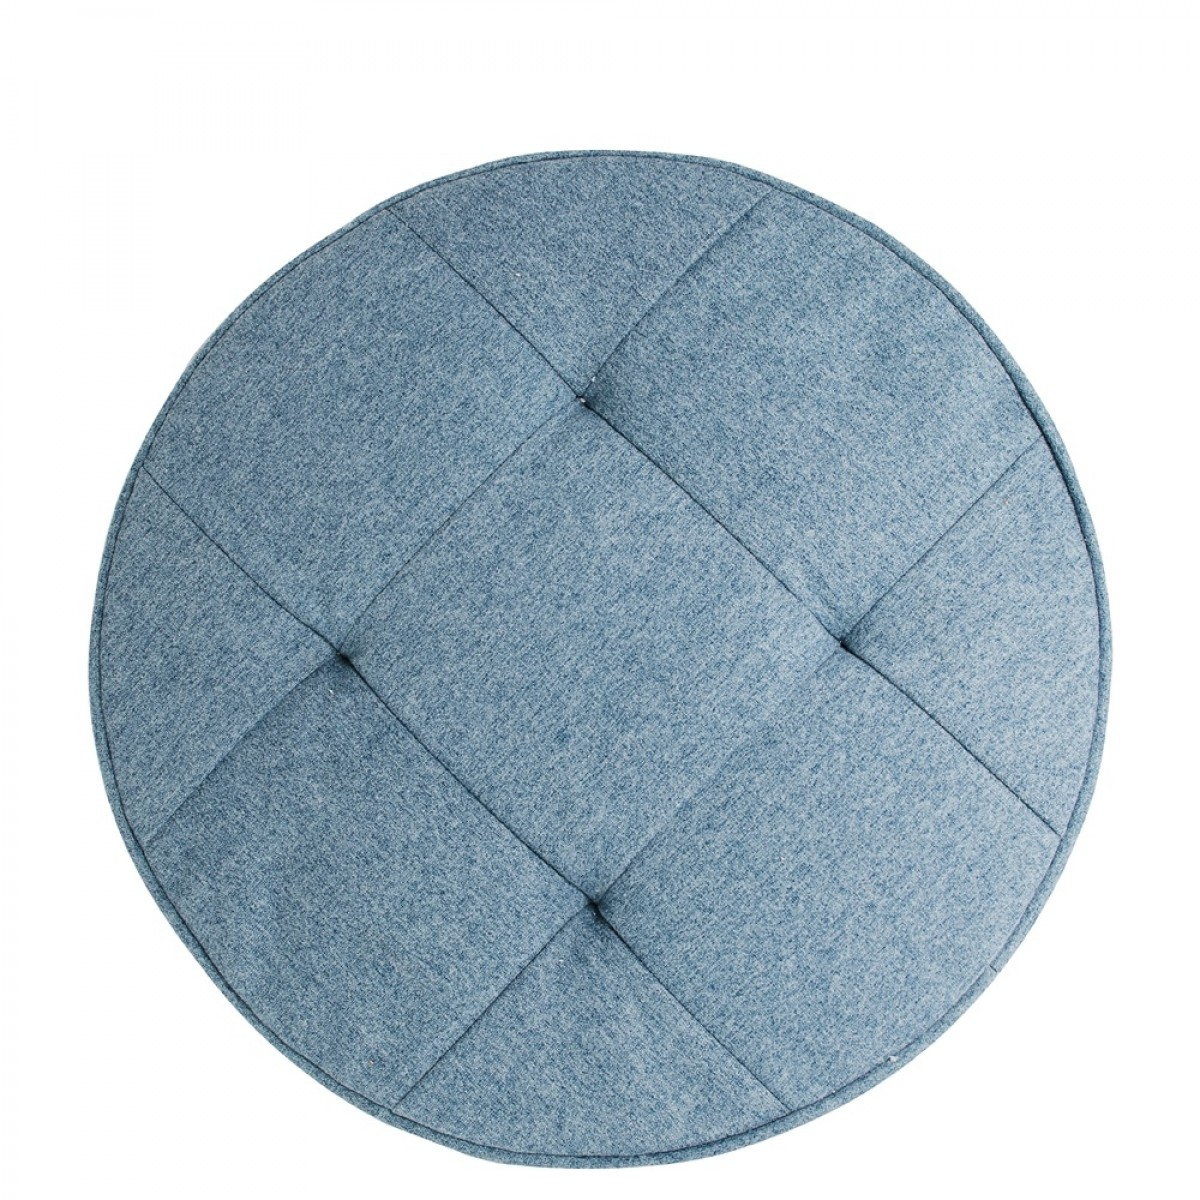 coussin de sol bleu rond 50 cm les douces nuits de ma linge de maison. Black Bedroom Furniture Sets. Home Design Ideas